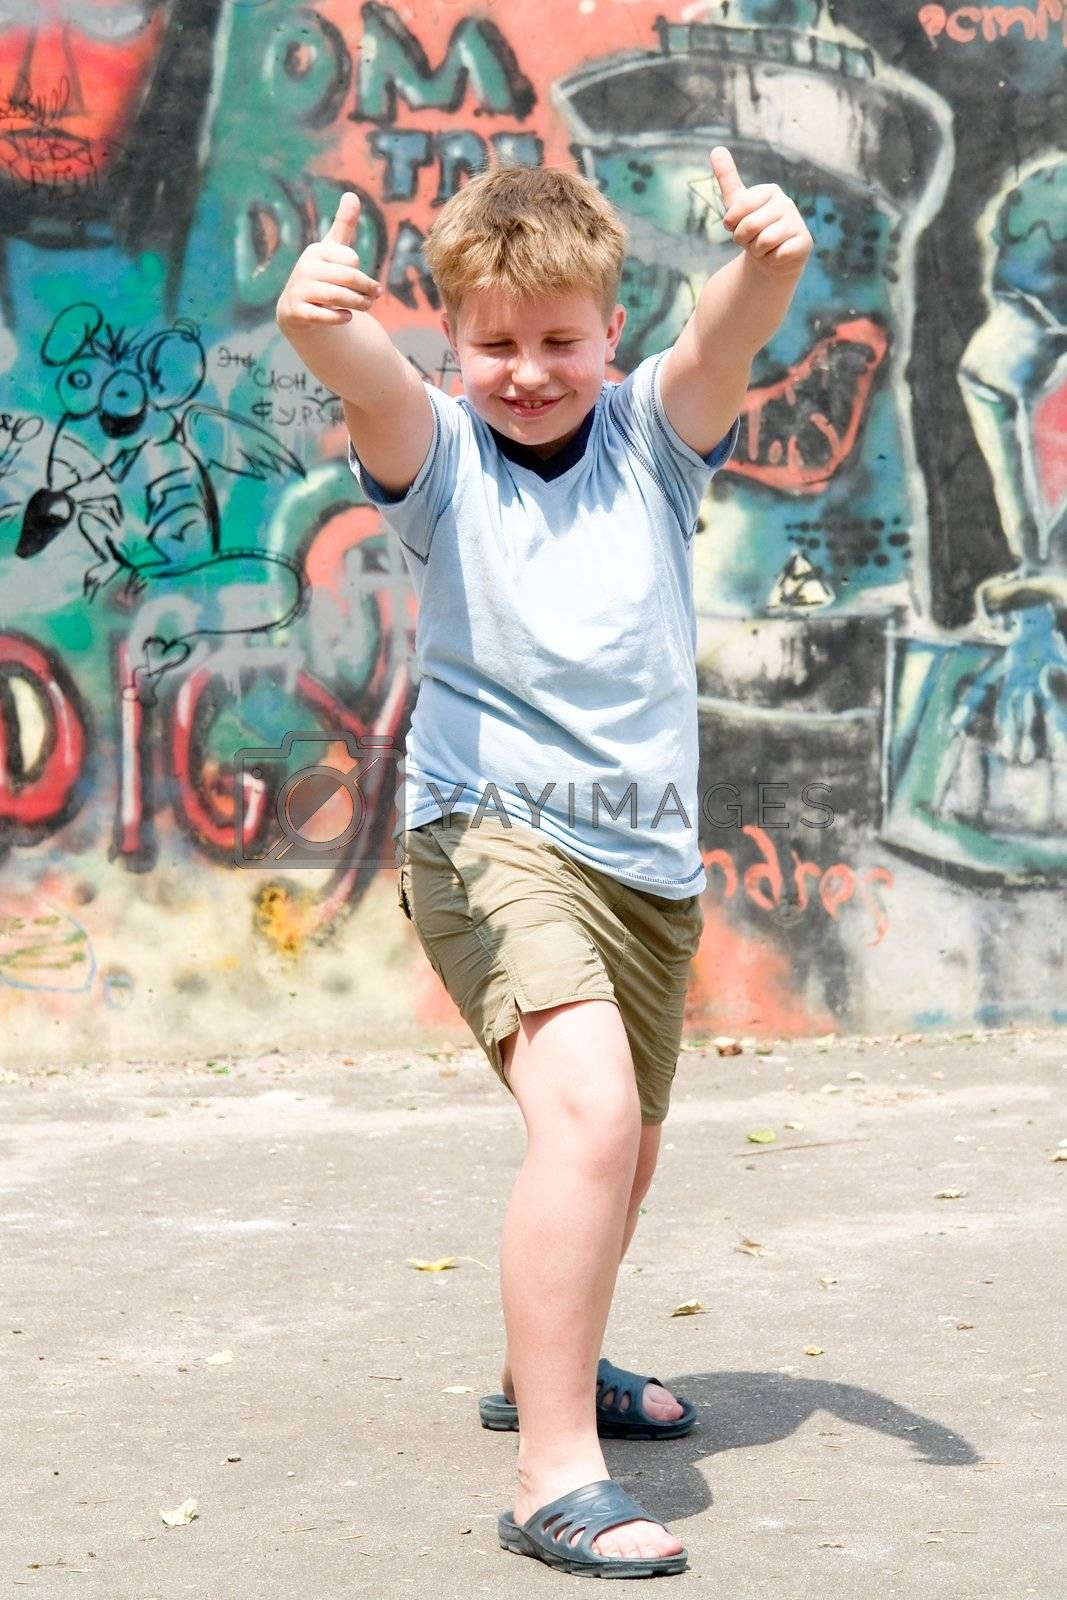 A smiling child with graffiti at background